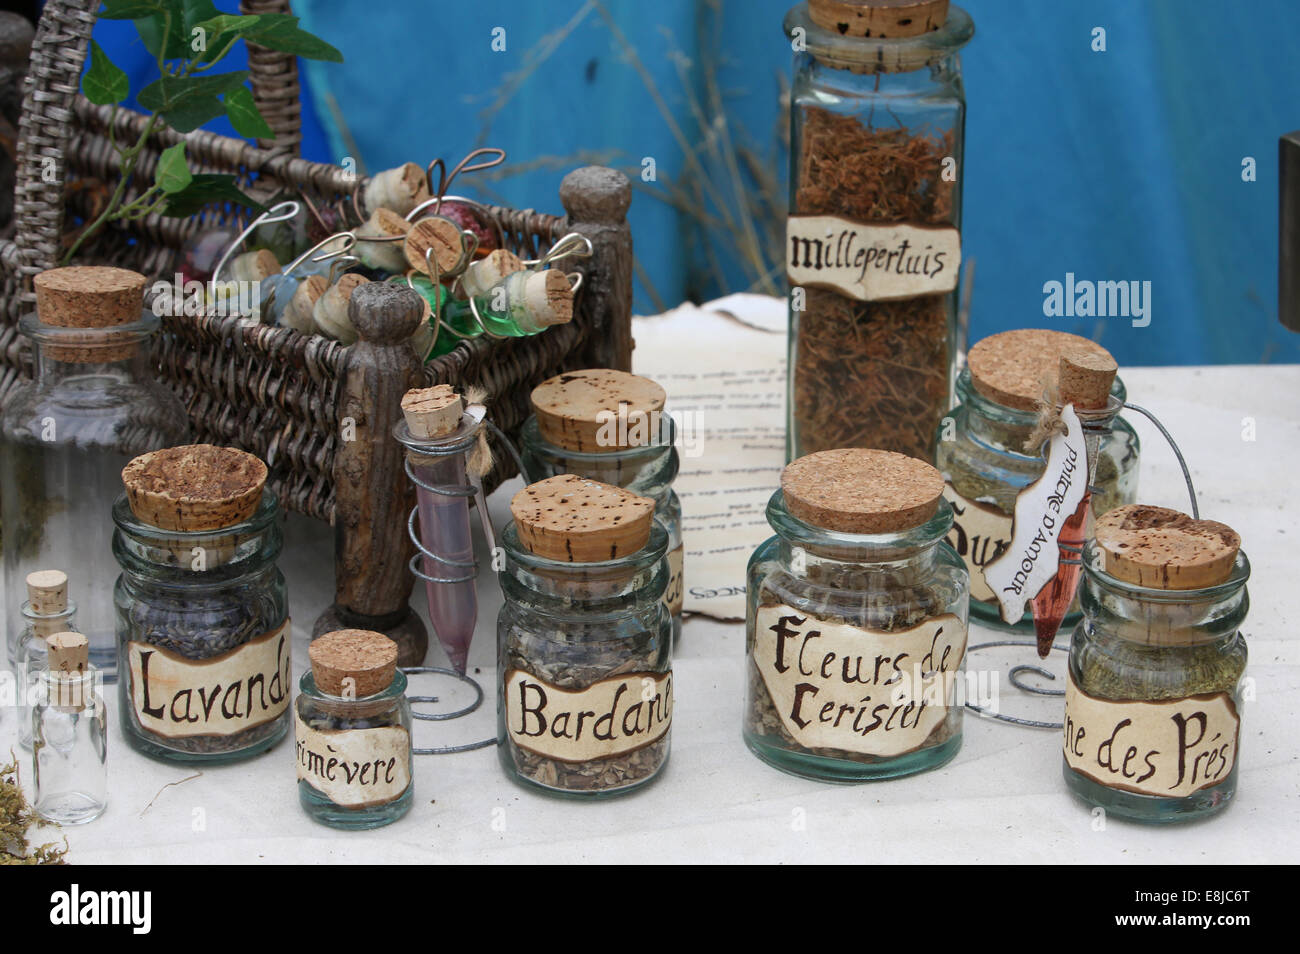 Trade in herbs. Herbalist production. Stock Photo